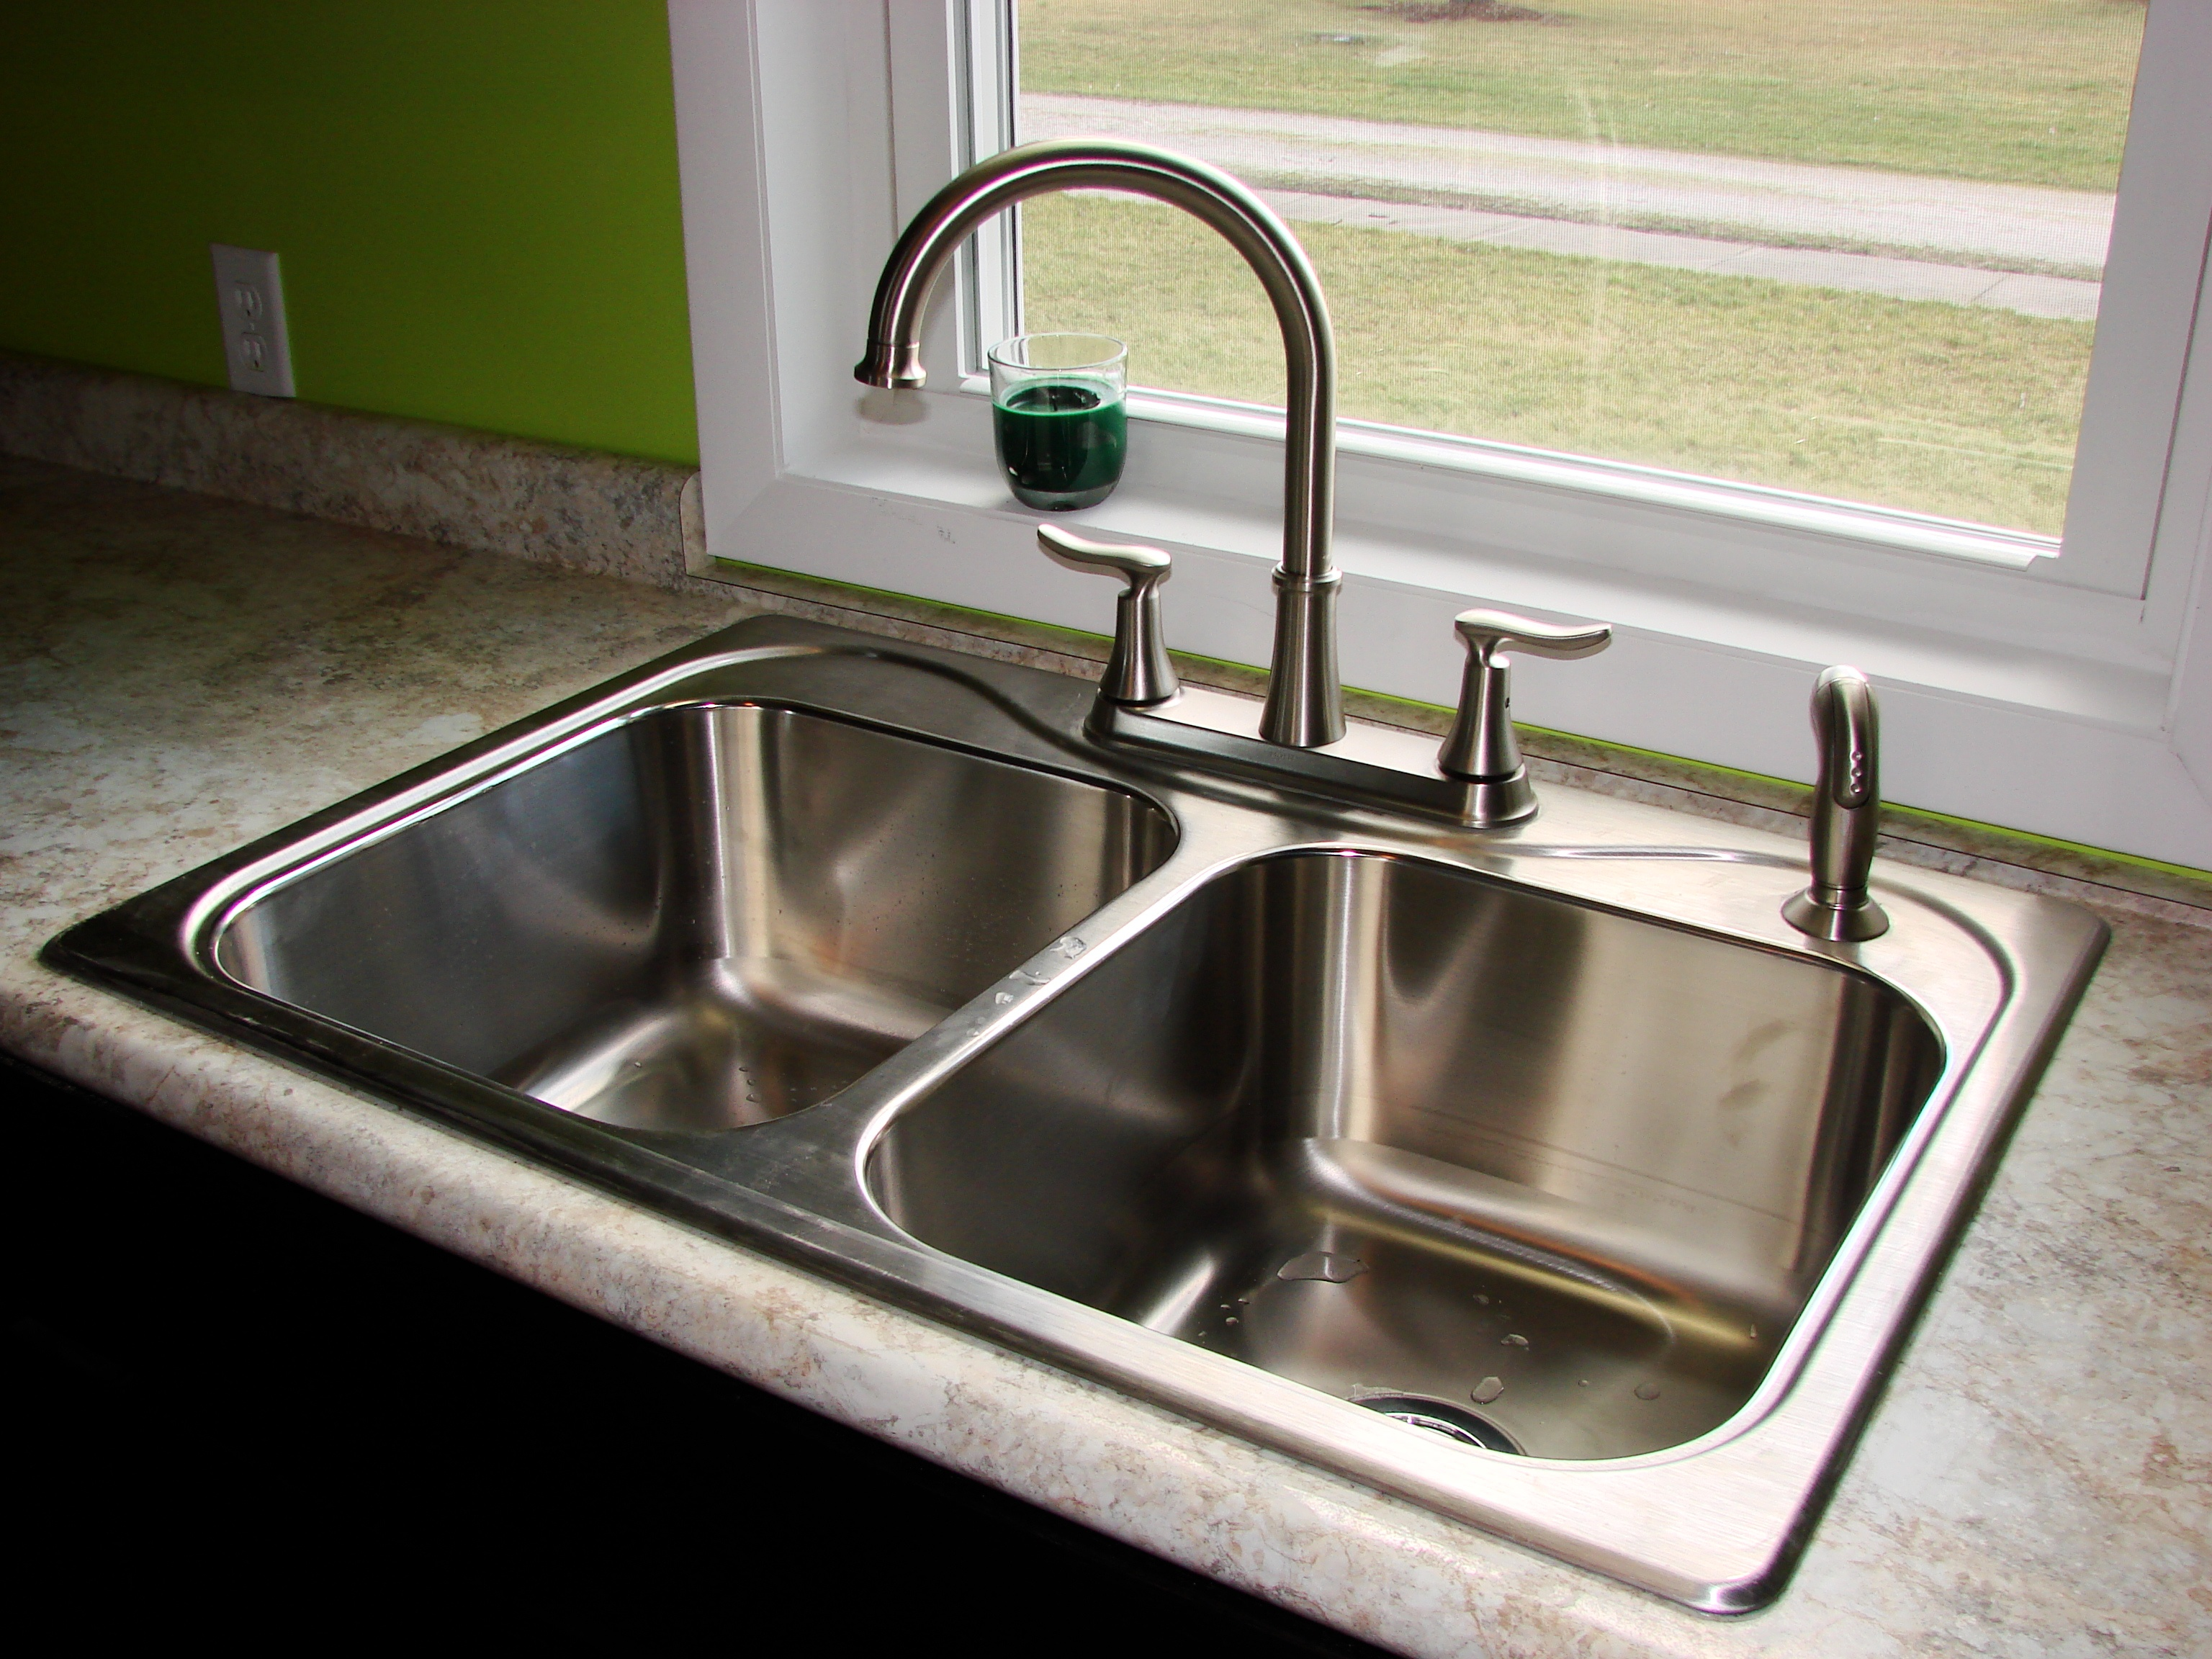 Attractive barclay sinks single bowl double bowl stainless kitchen sink barclay sinks for kitchen ideas